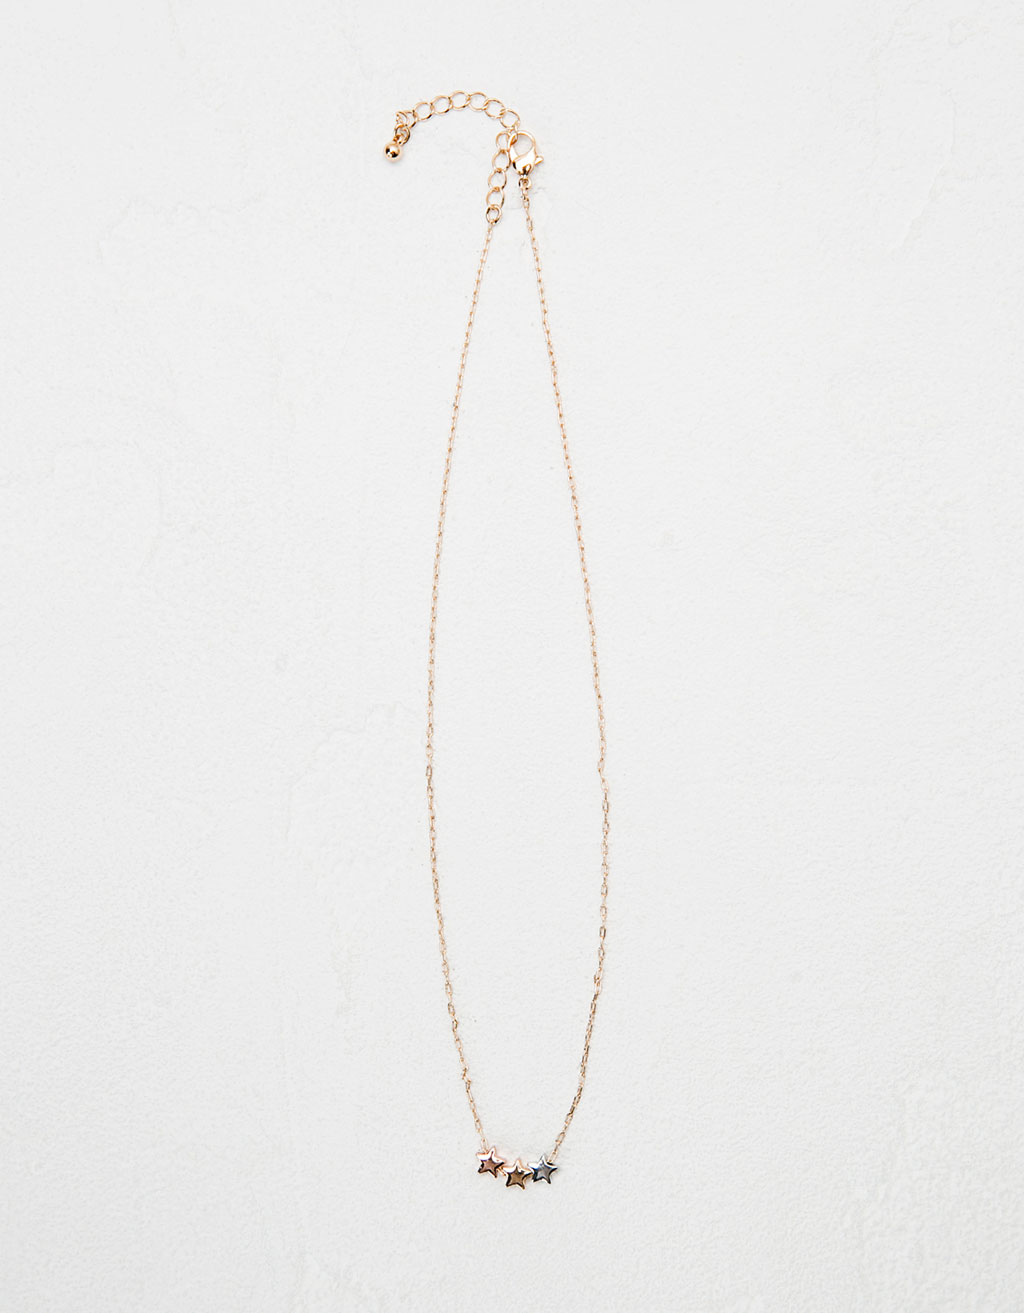 Minimal star necklace